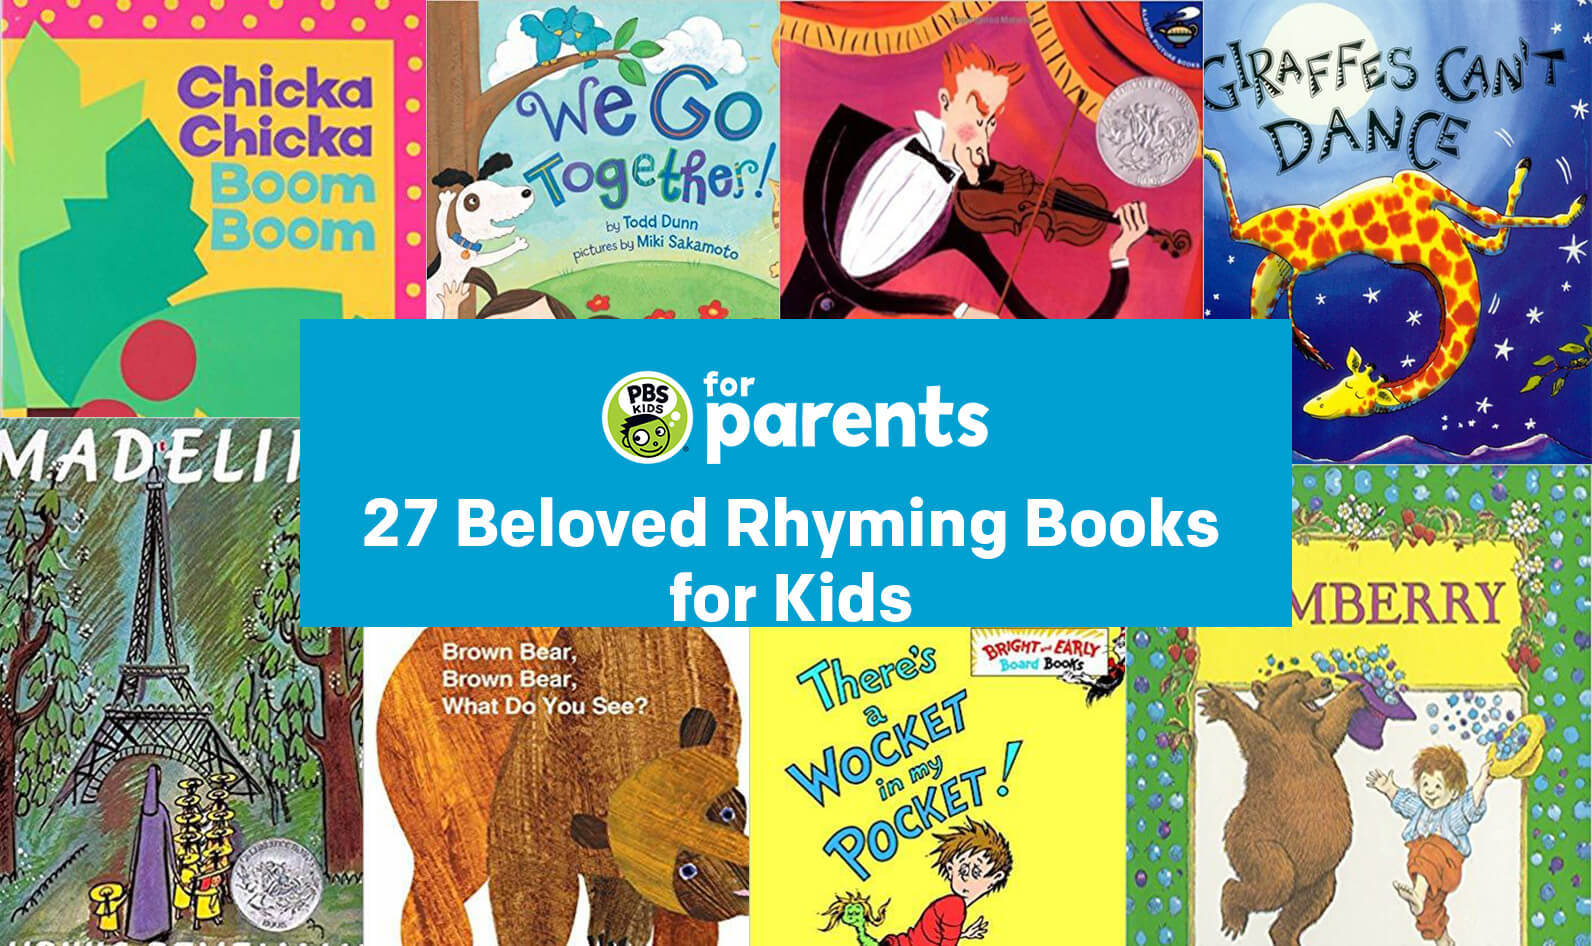 27 Beloved Rhyming Books for Kids | Parenting Tips & Advice | PBS KIDS for Parents